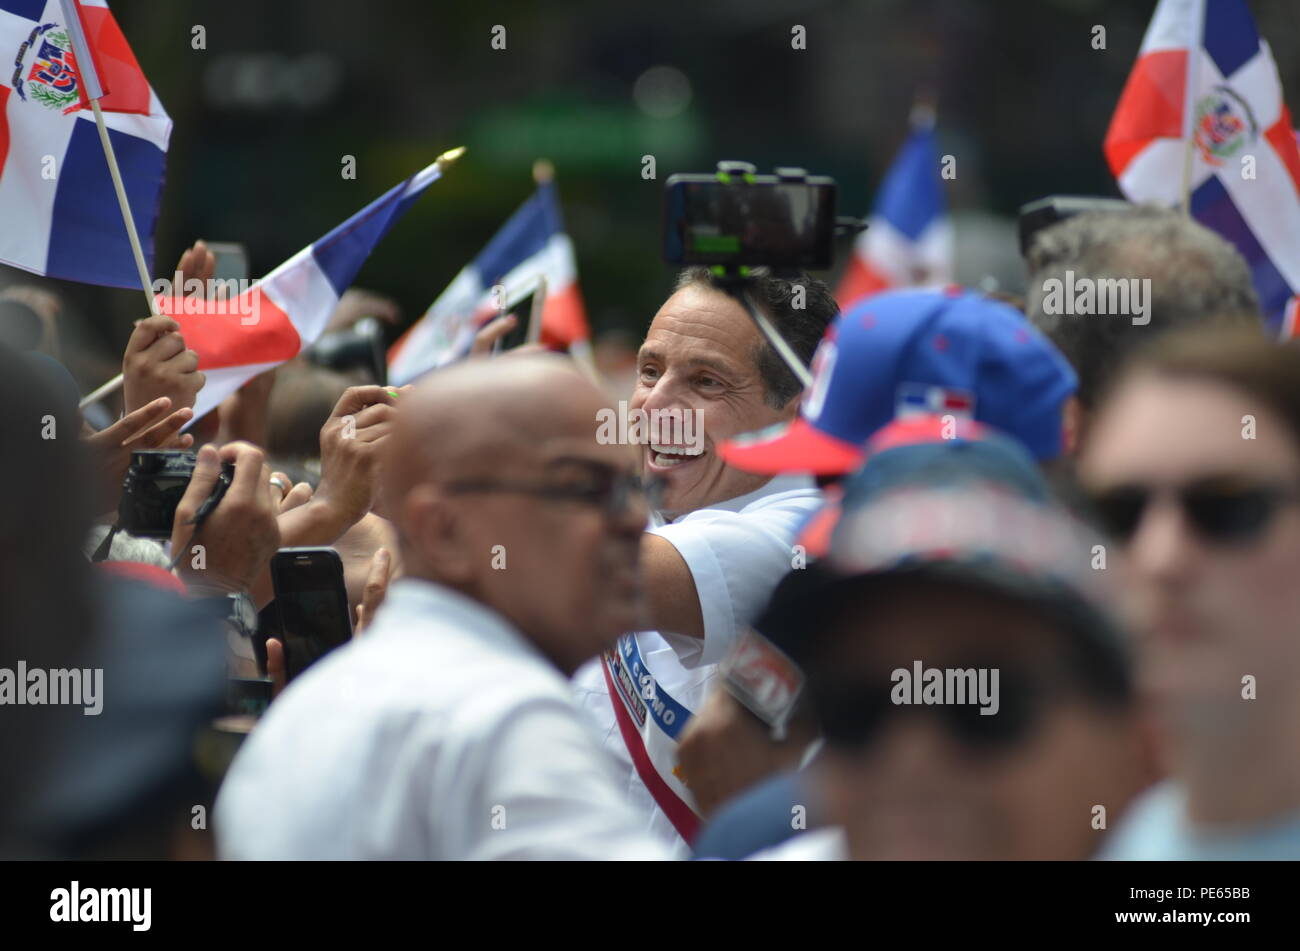 New York, USA. 12th Aug, 2018.New York Governor Andrew Cuomo attends the Dominican Day Parade in New York, the United States. Dominican Day is a festive occasion celebrating Dominican tradition, heritage and folklore in the streets of New York. Credit: Ryan Rahman/Alamy Live News - Stock Image